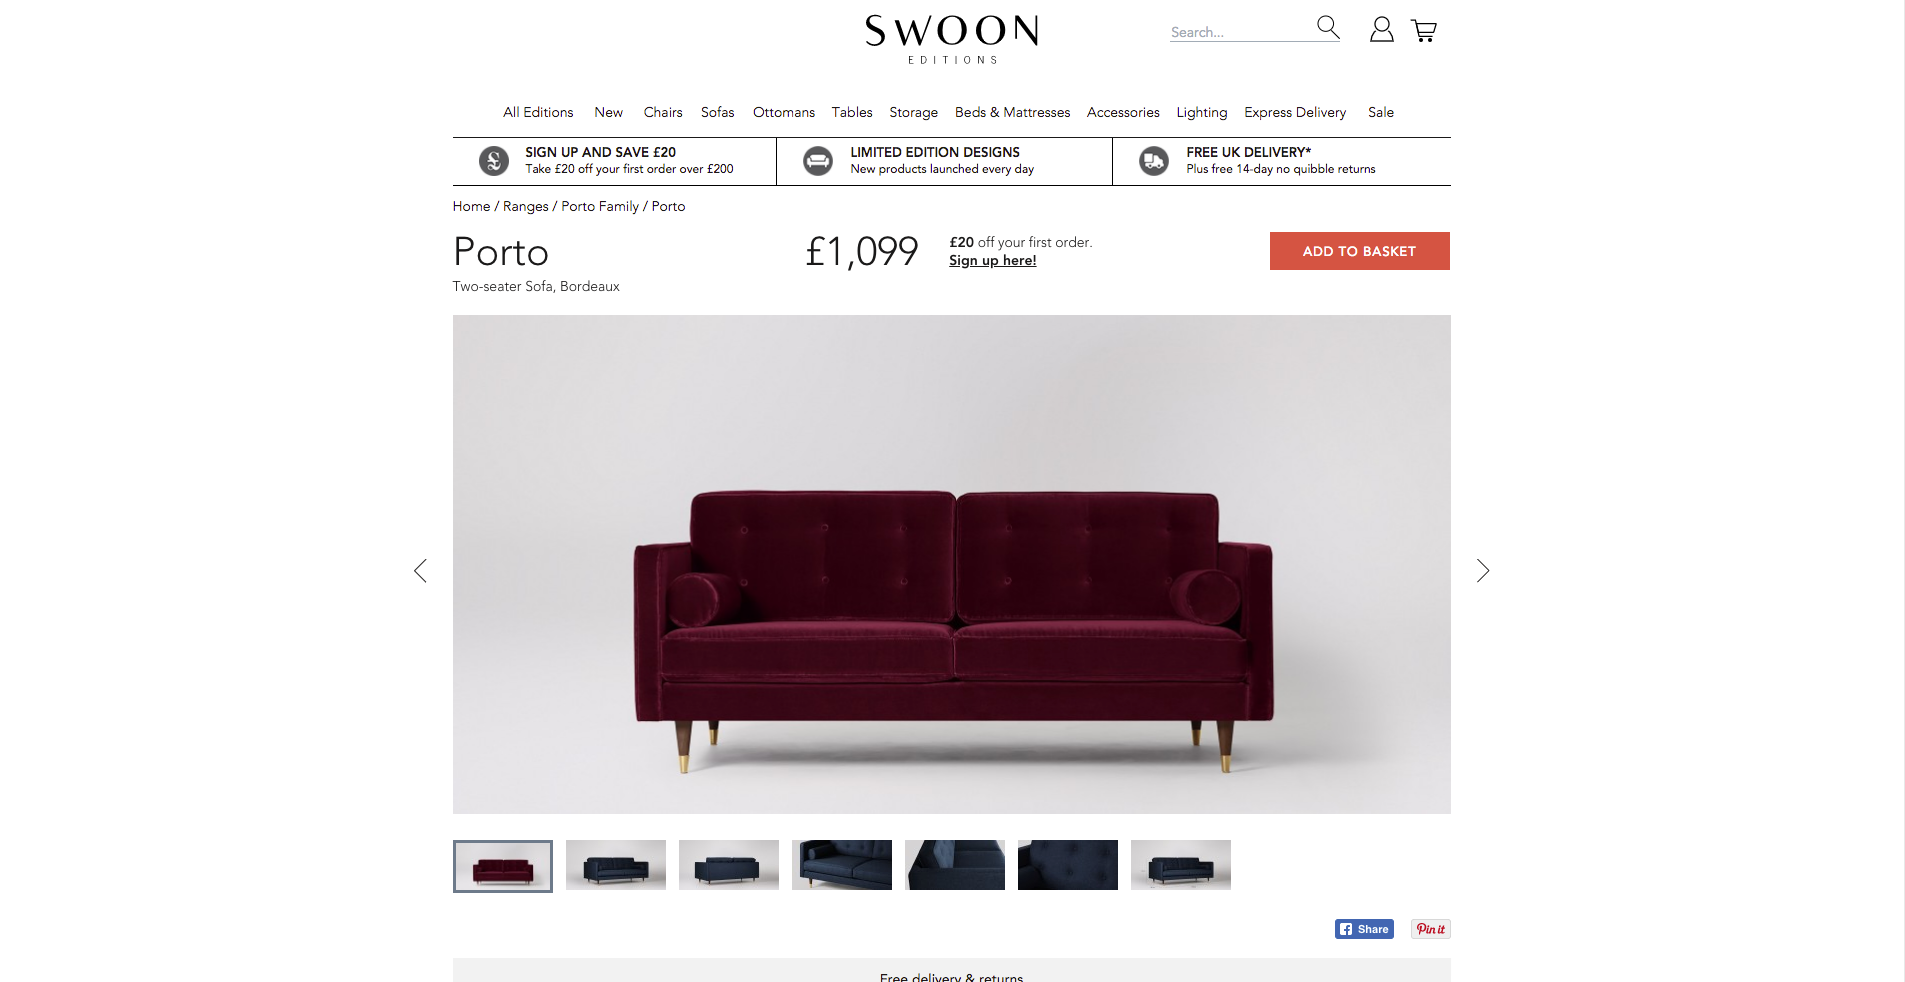 Swoon Editions Product Page